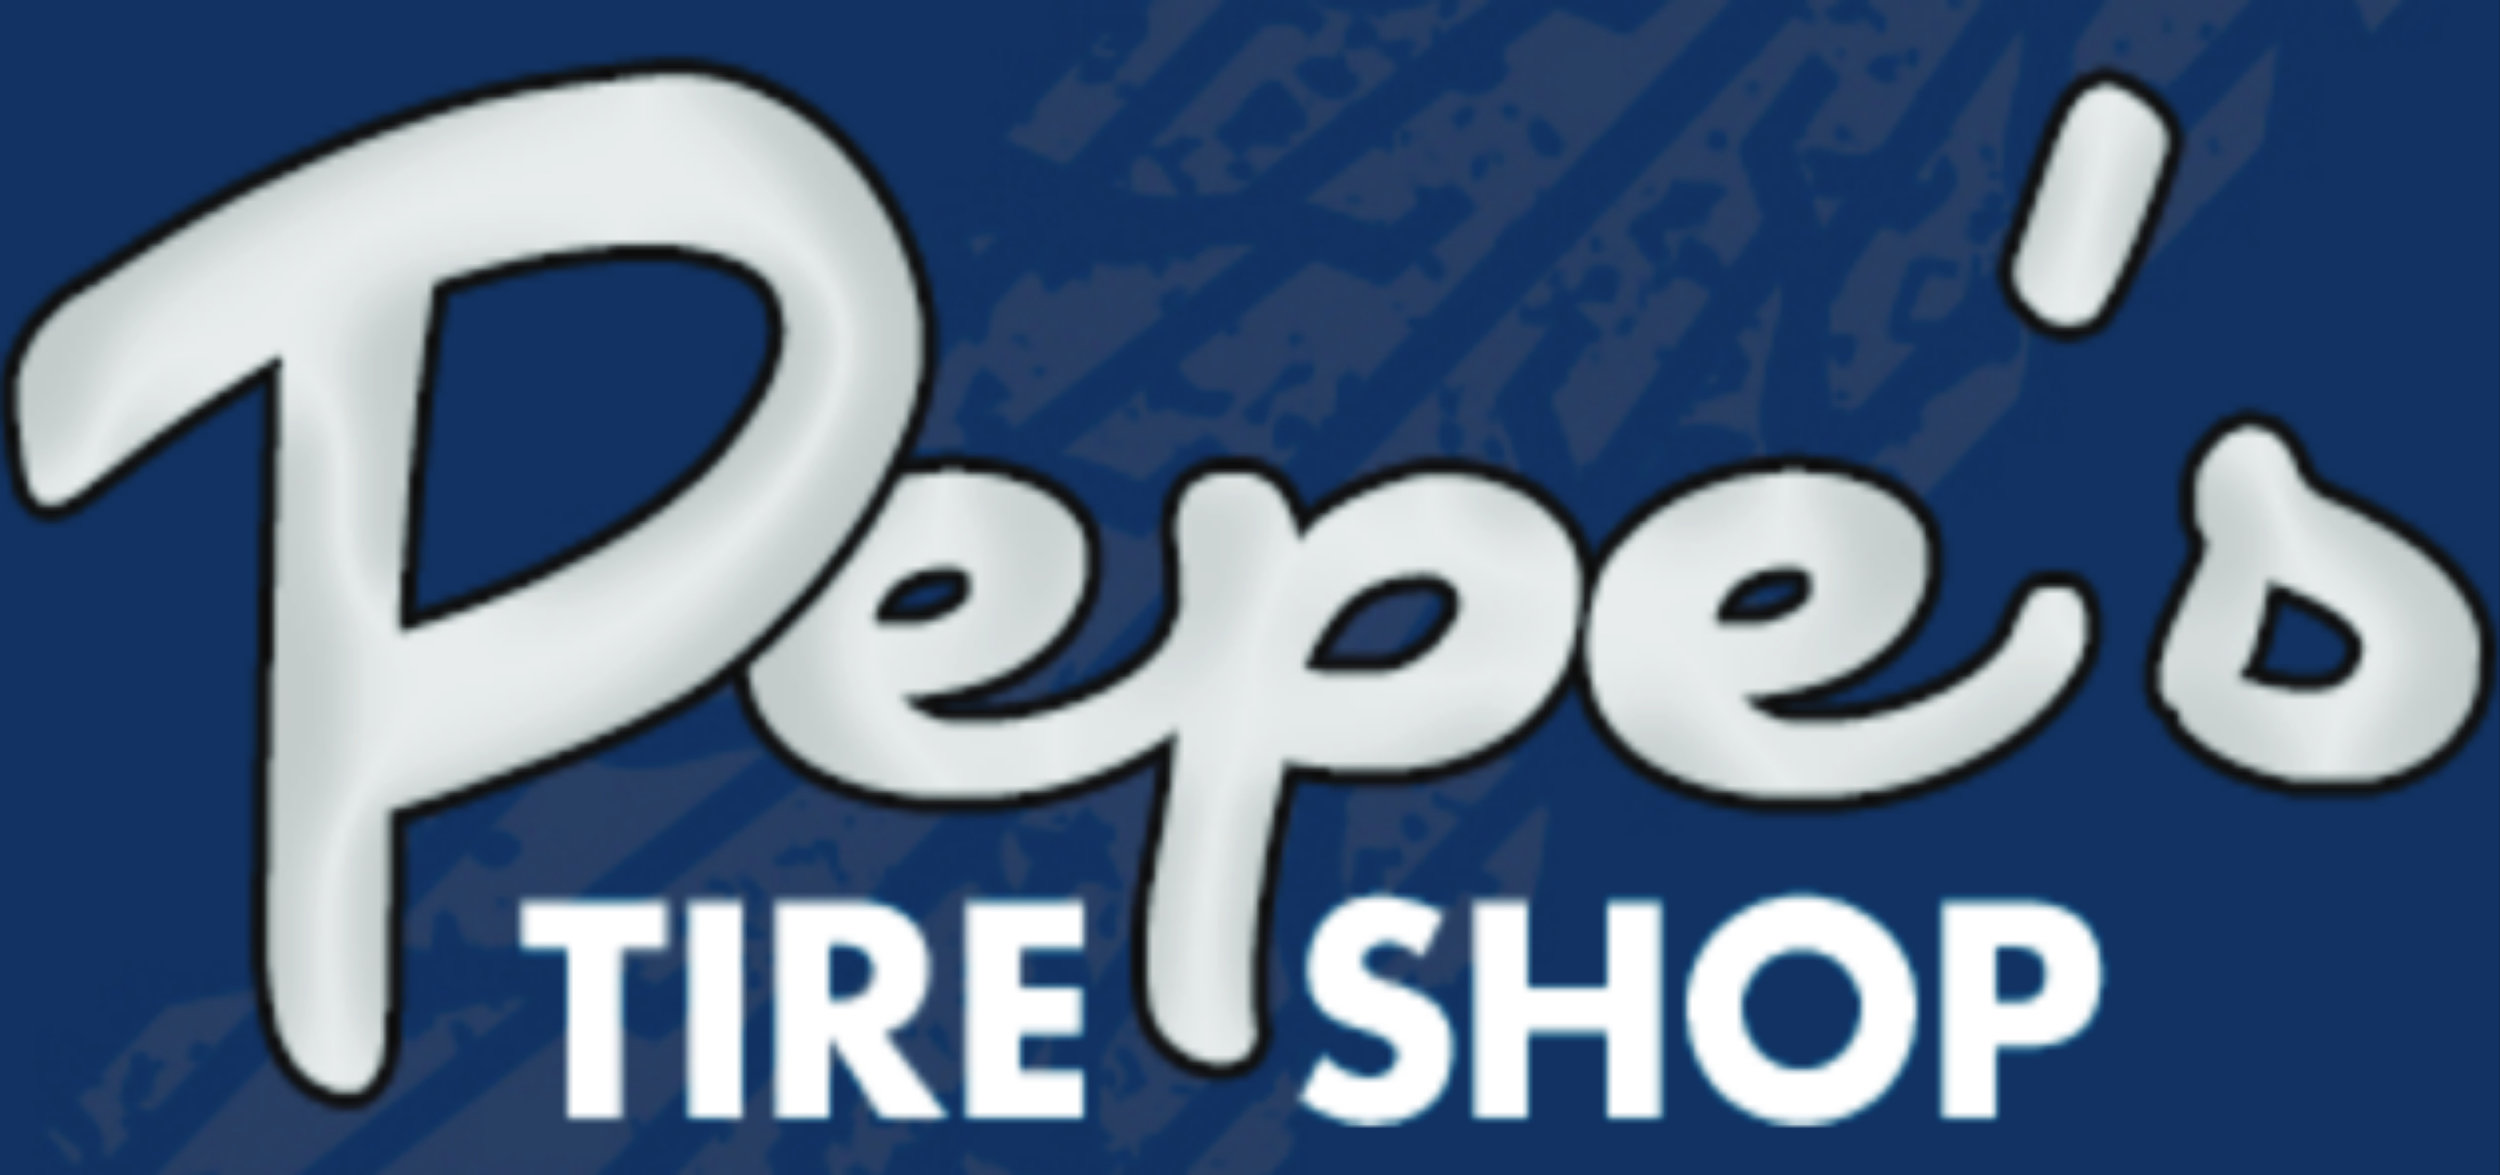 Pepe's Tire Shop  (323) 223-9956 807 Cypress Avenue Los Angeles, CA 90065  https://www.pepestireshop.com/   Pepe's Tire Shop serves customers in Los Angeles, Pasadena, and Glendale, CA. If you're looking for an auto repair shop you can trust in the LA area, you can count on us to deliver quality work at a fair price. Our team of expert technicians offers auto repairs ranging from brakes and oil changes to wheel alignments and steering and suspension work. Our auto repair and tire shop is also proud to be recognized by the BBB.